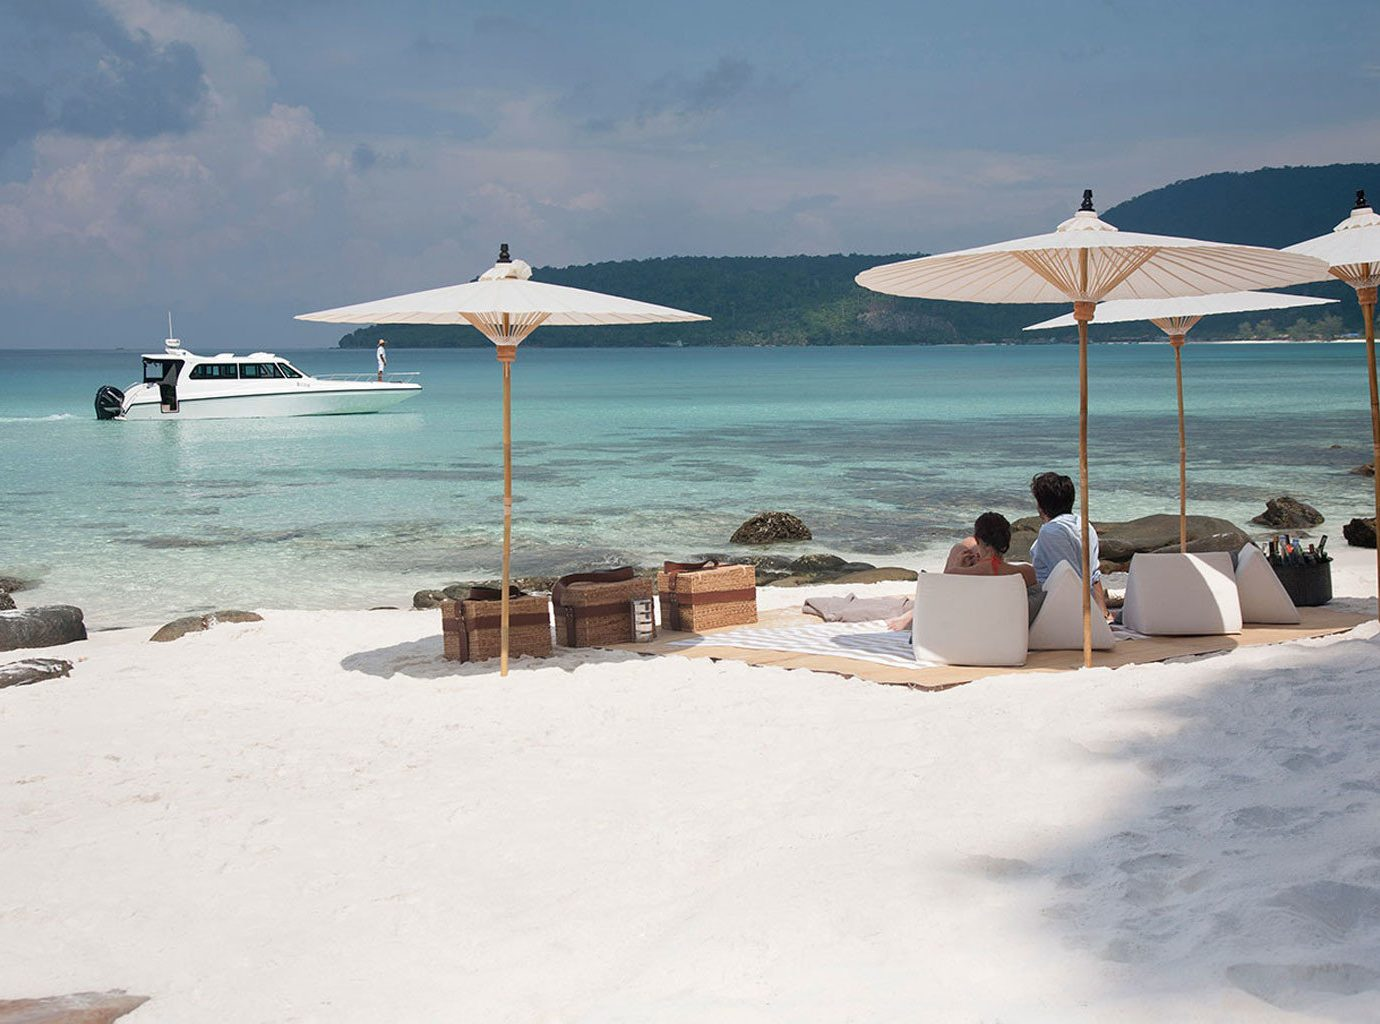 All-Inclusive Resorts Hotels Luxury Travel sky outdoor water umbrella Beach Sea chair shore body of water Nature Ocean vacation Coast vehicle bay Lagoon cape Island sand sandy day several